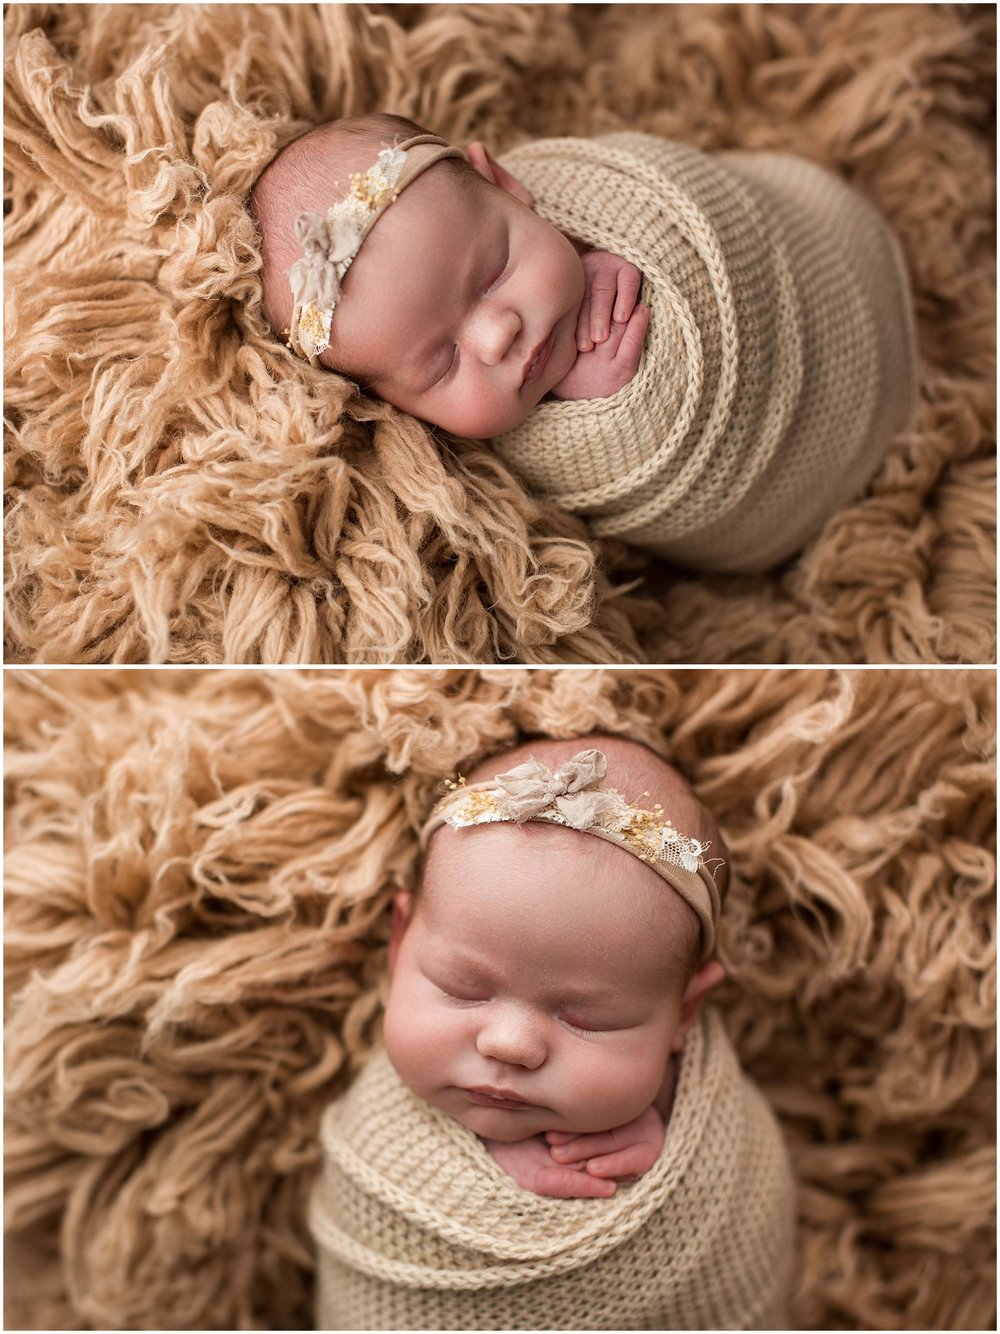 Annie wrapped with a knit wrap on a flokati rug